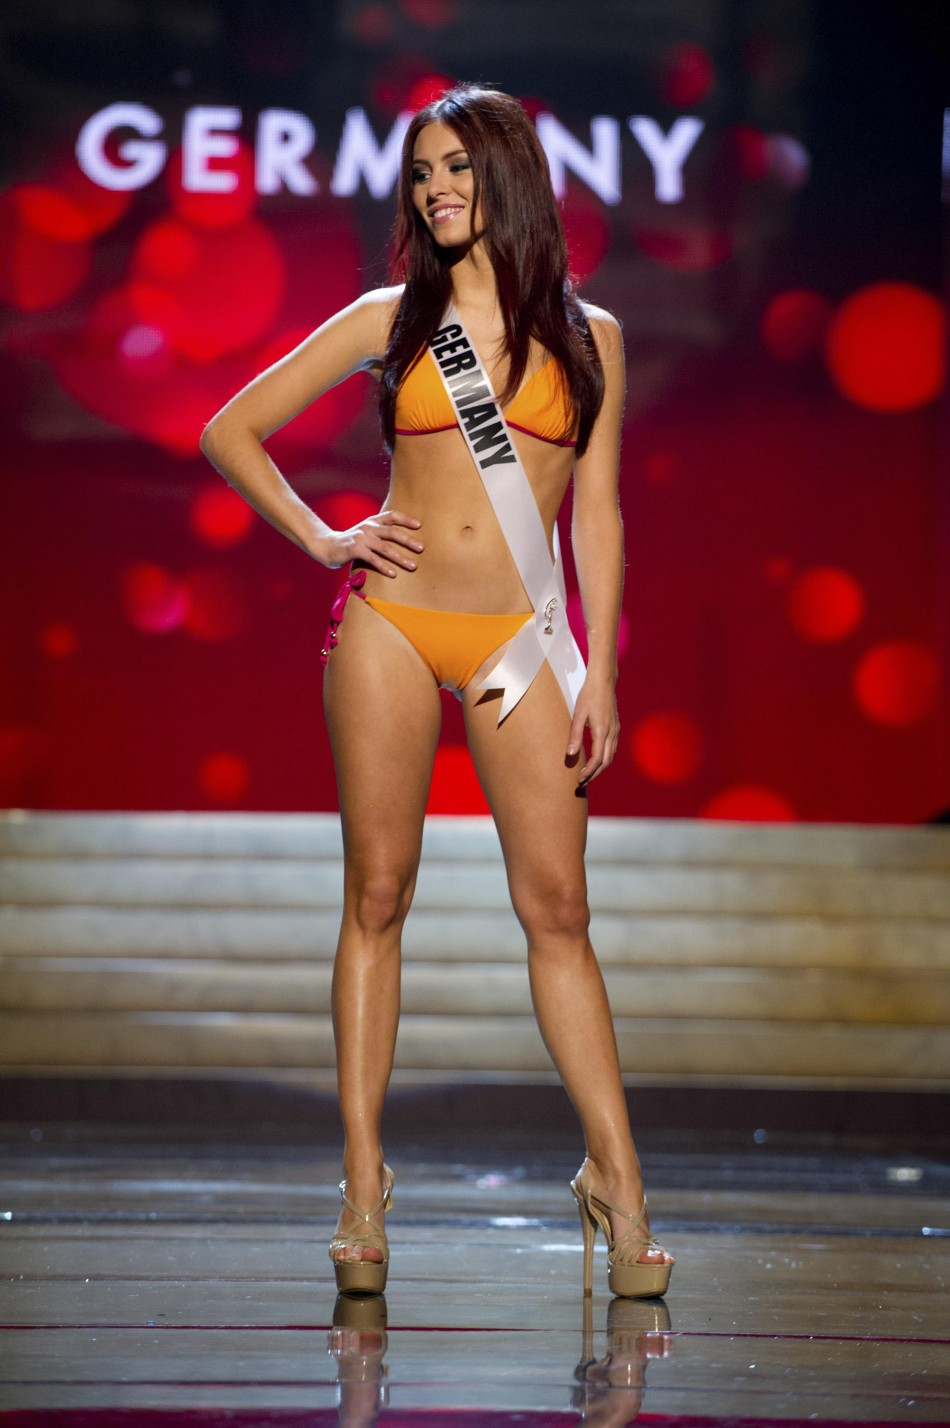 Miss Germany Alicia Endemann at the Swimsuit Competition of the 2012 Miss Universe Presentation Show at PH Live in Las Vegas